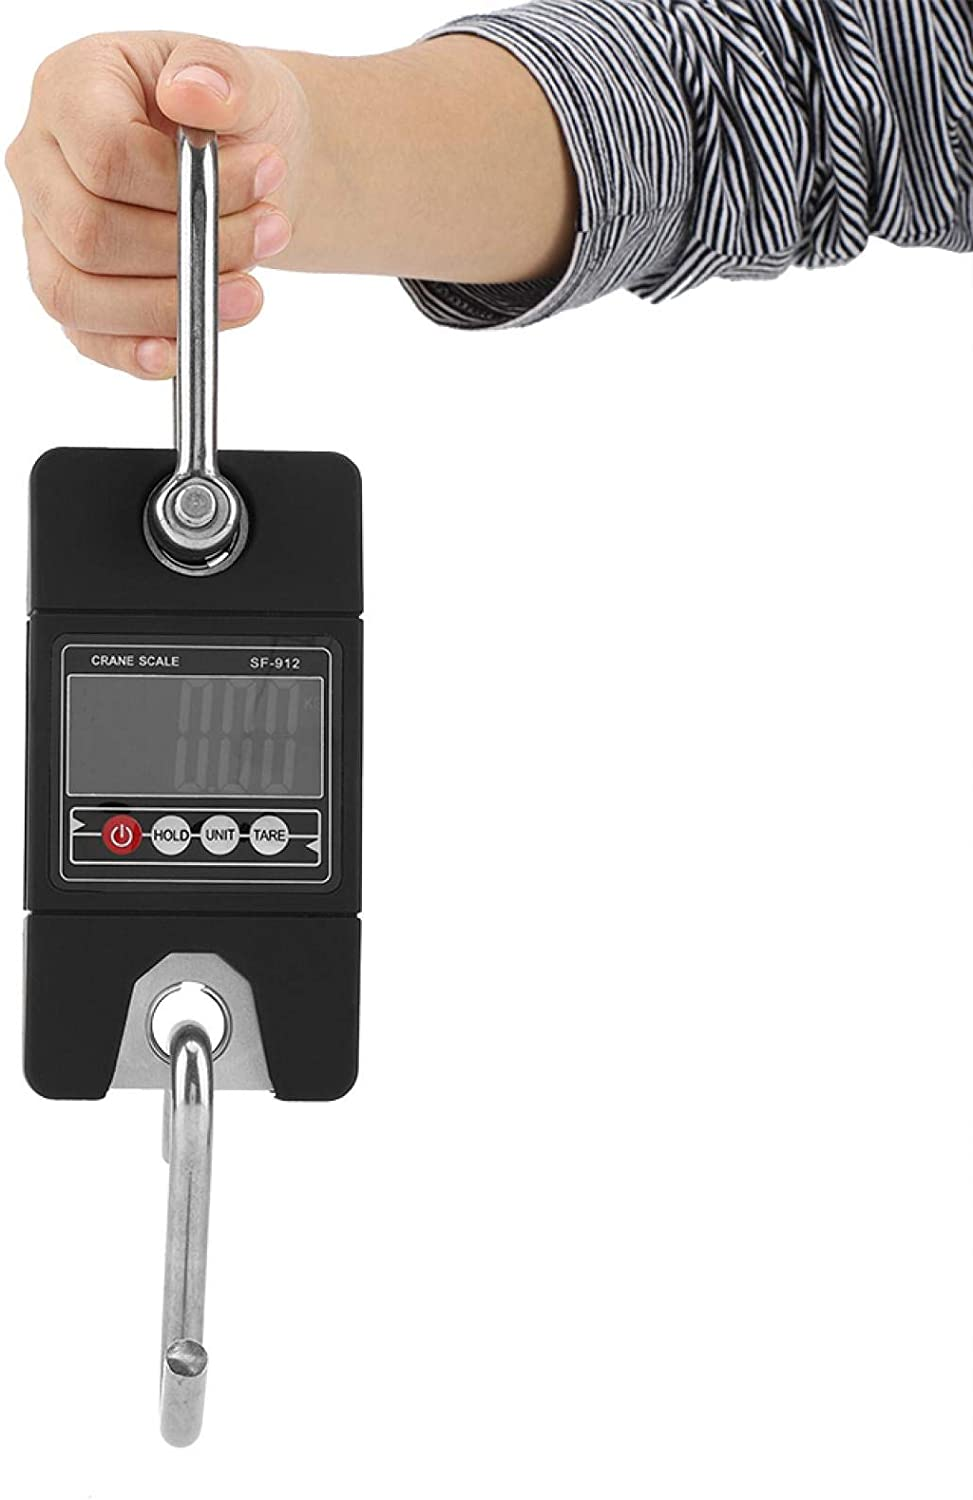 XQAQX Portable Electronic Scale 5 ☆ popular 150kg 100g Max 47% OFF Digital Hanging